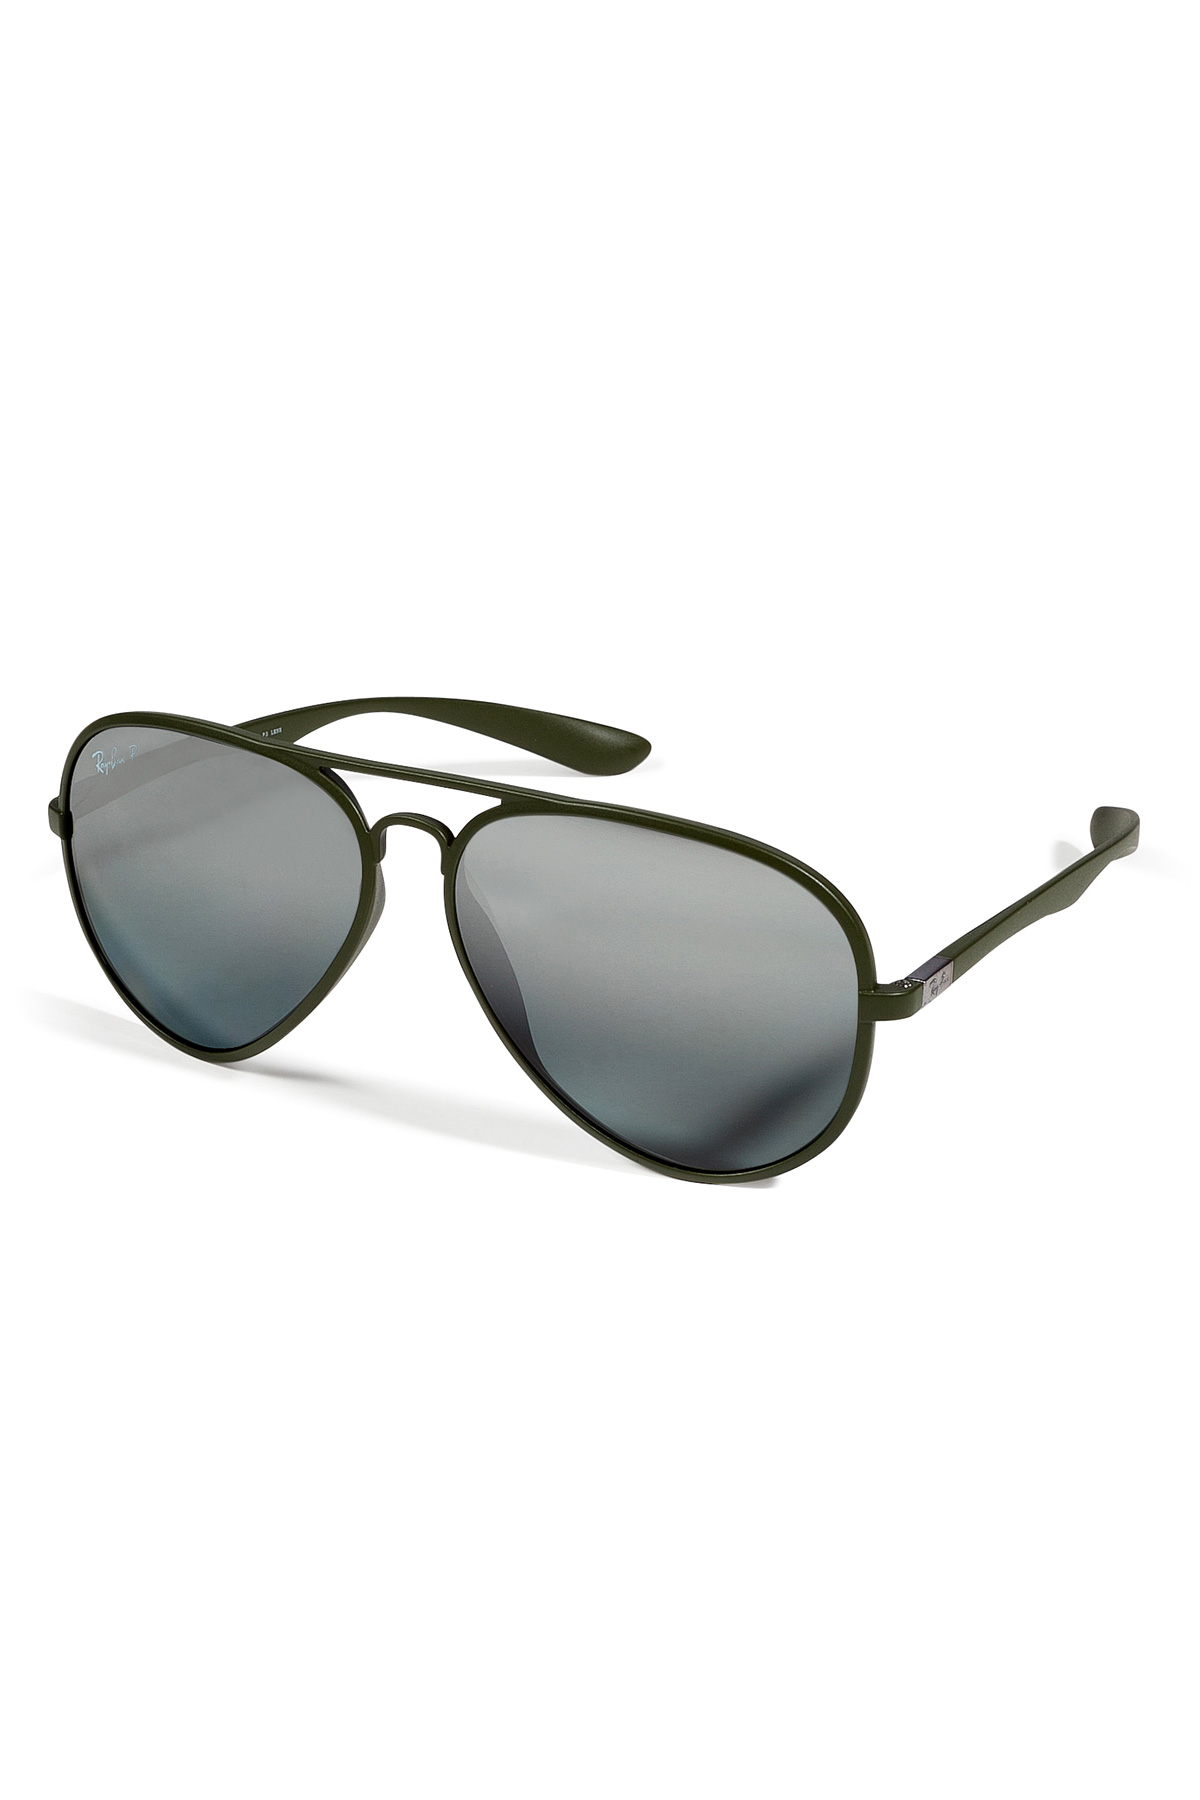 6a9df0f58e ... shopping ray ban matte green liteforce aviator tech polarized sunglasses  in 69fa2 ce6c1